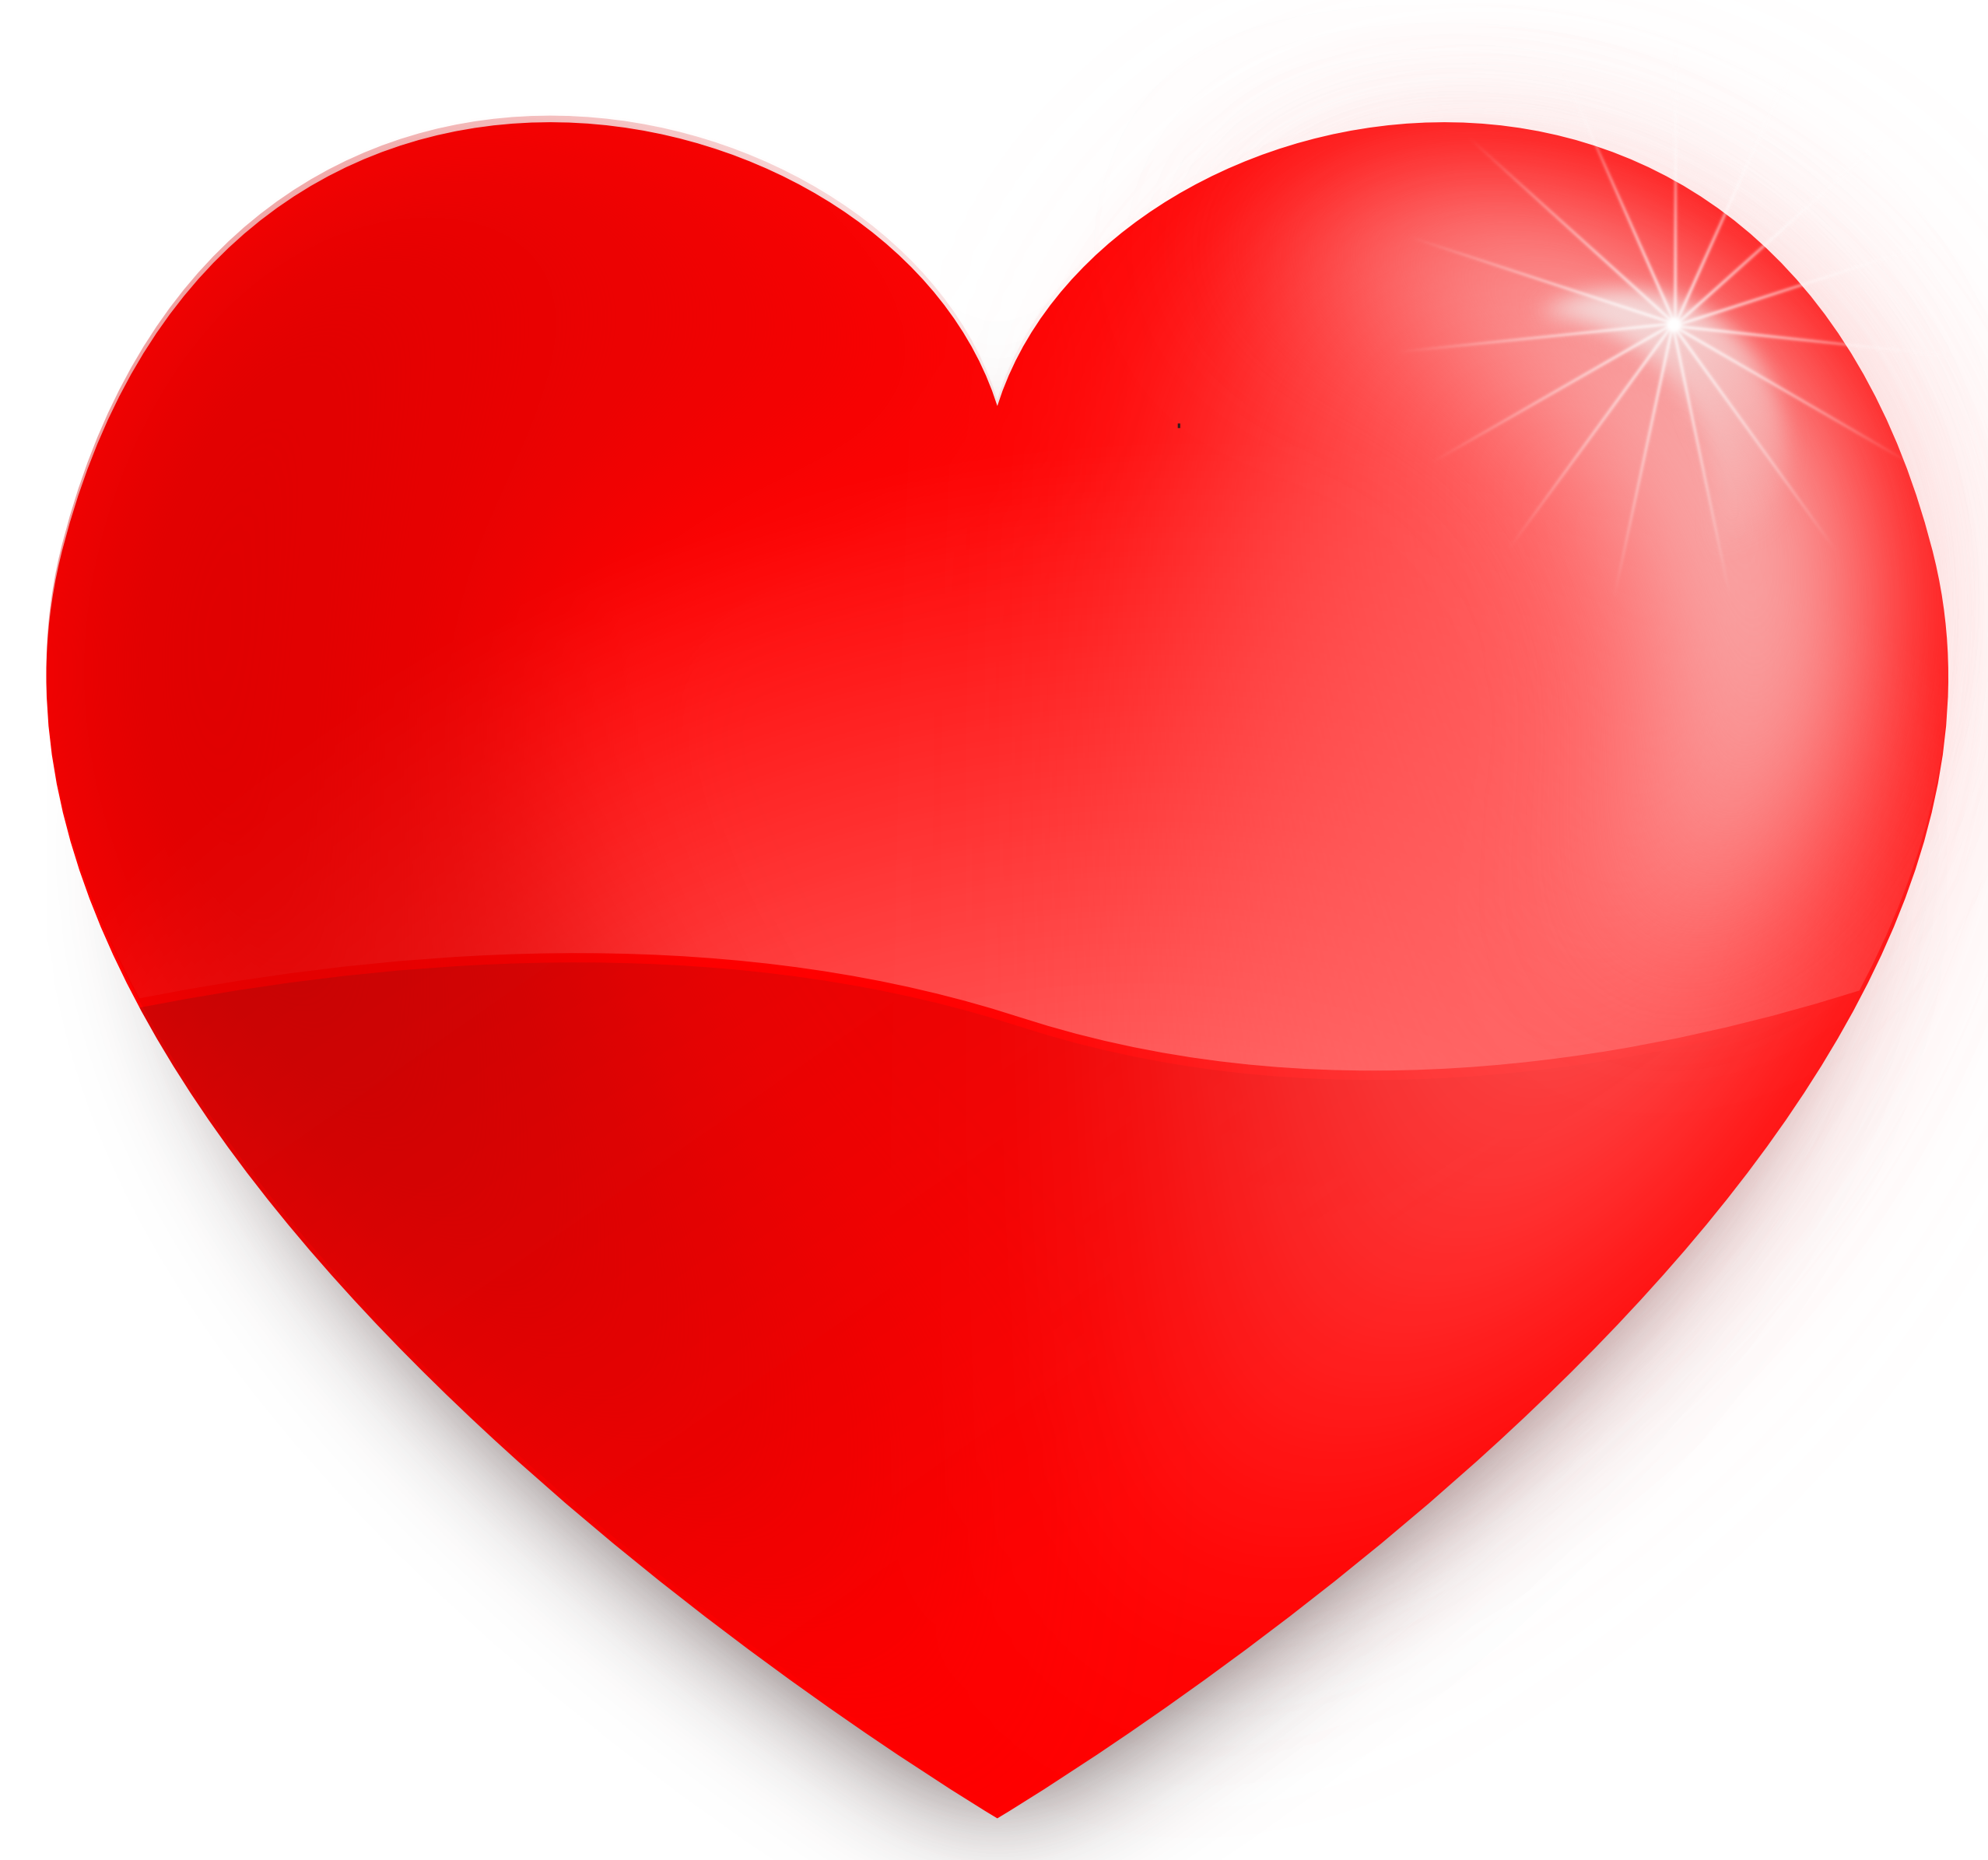 red heart png image purepng free transparent cc0 png free clipart gallery for office 2016 free clip art gallery free download